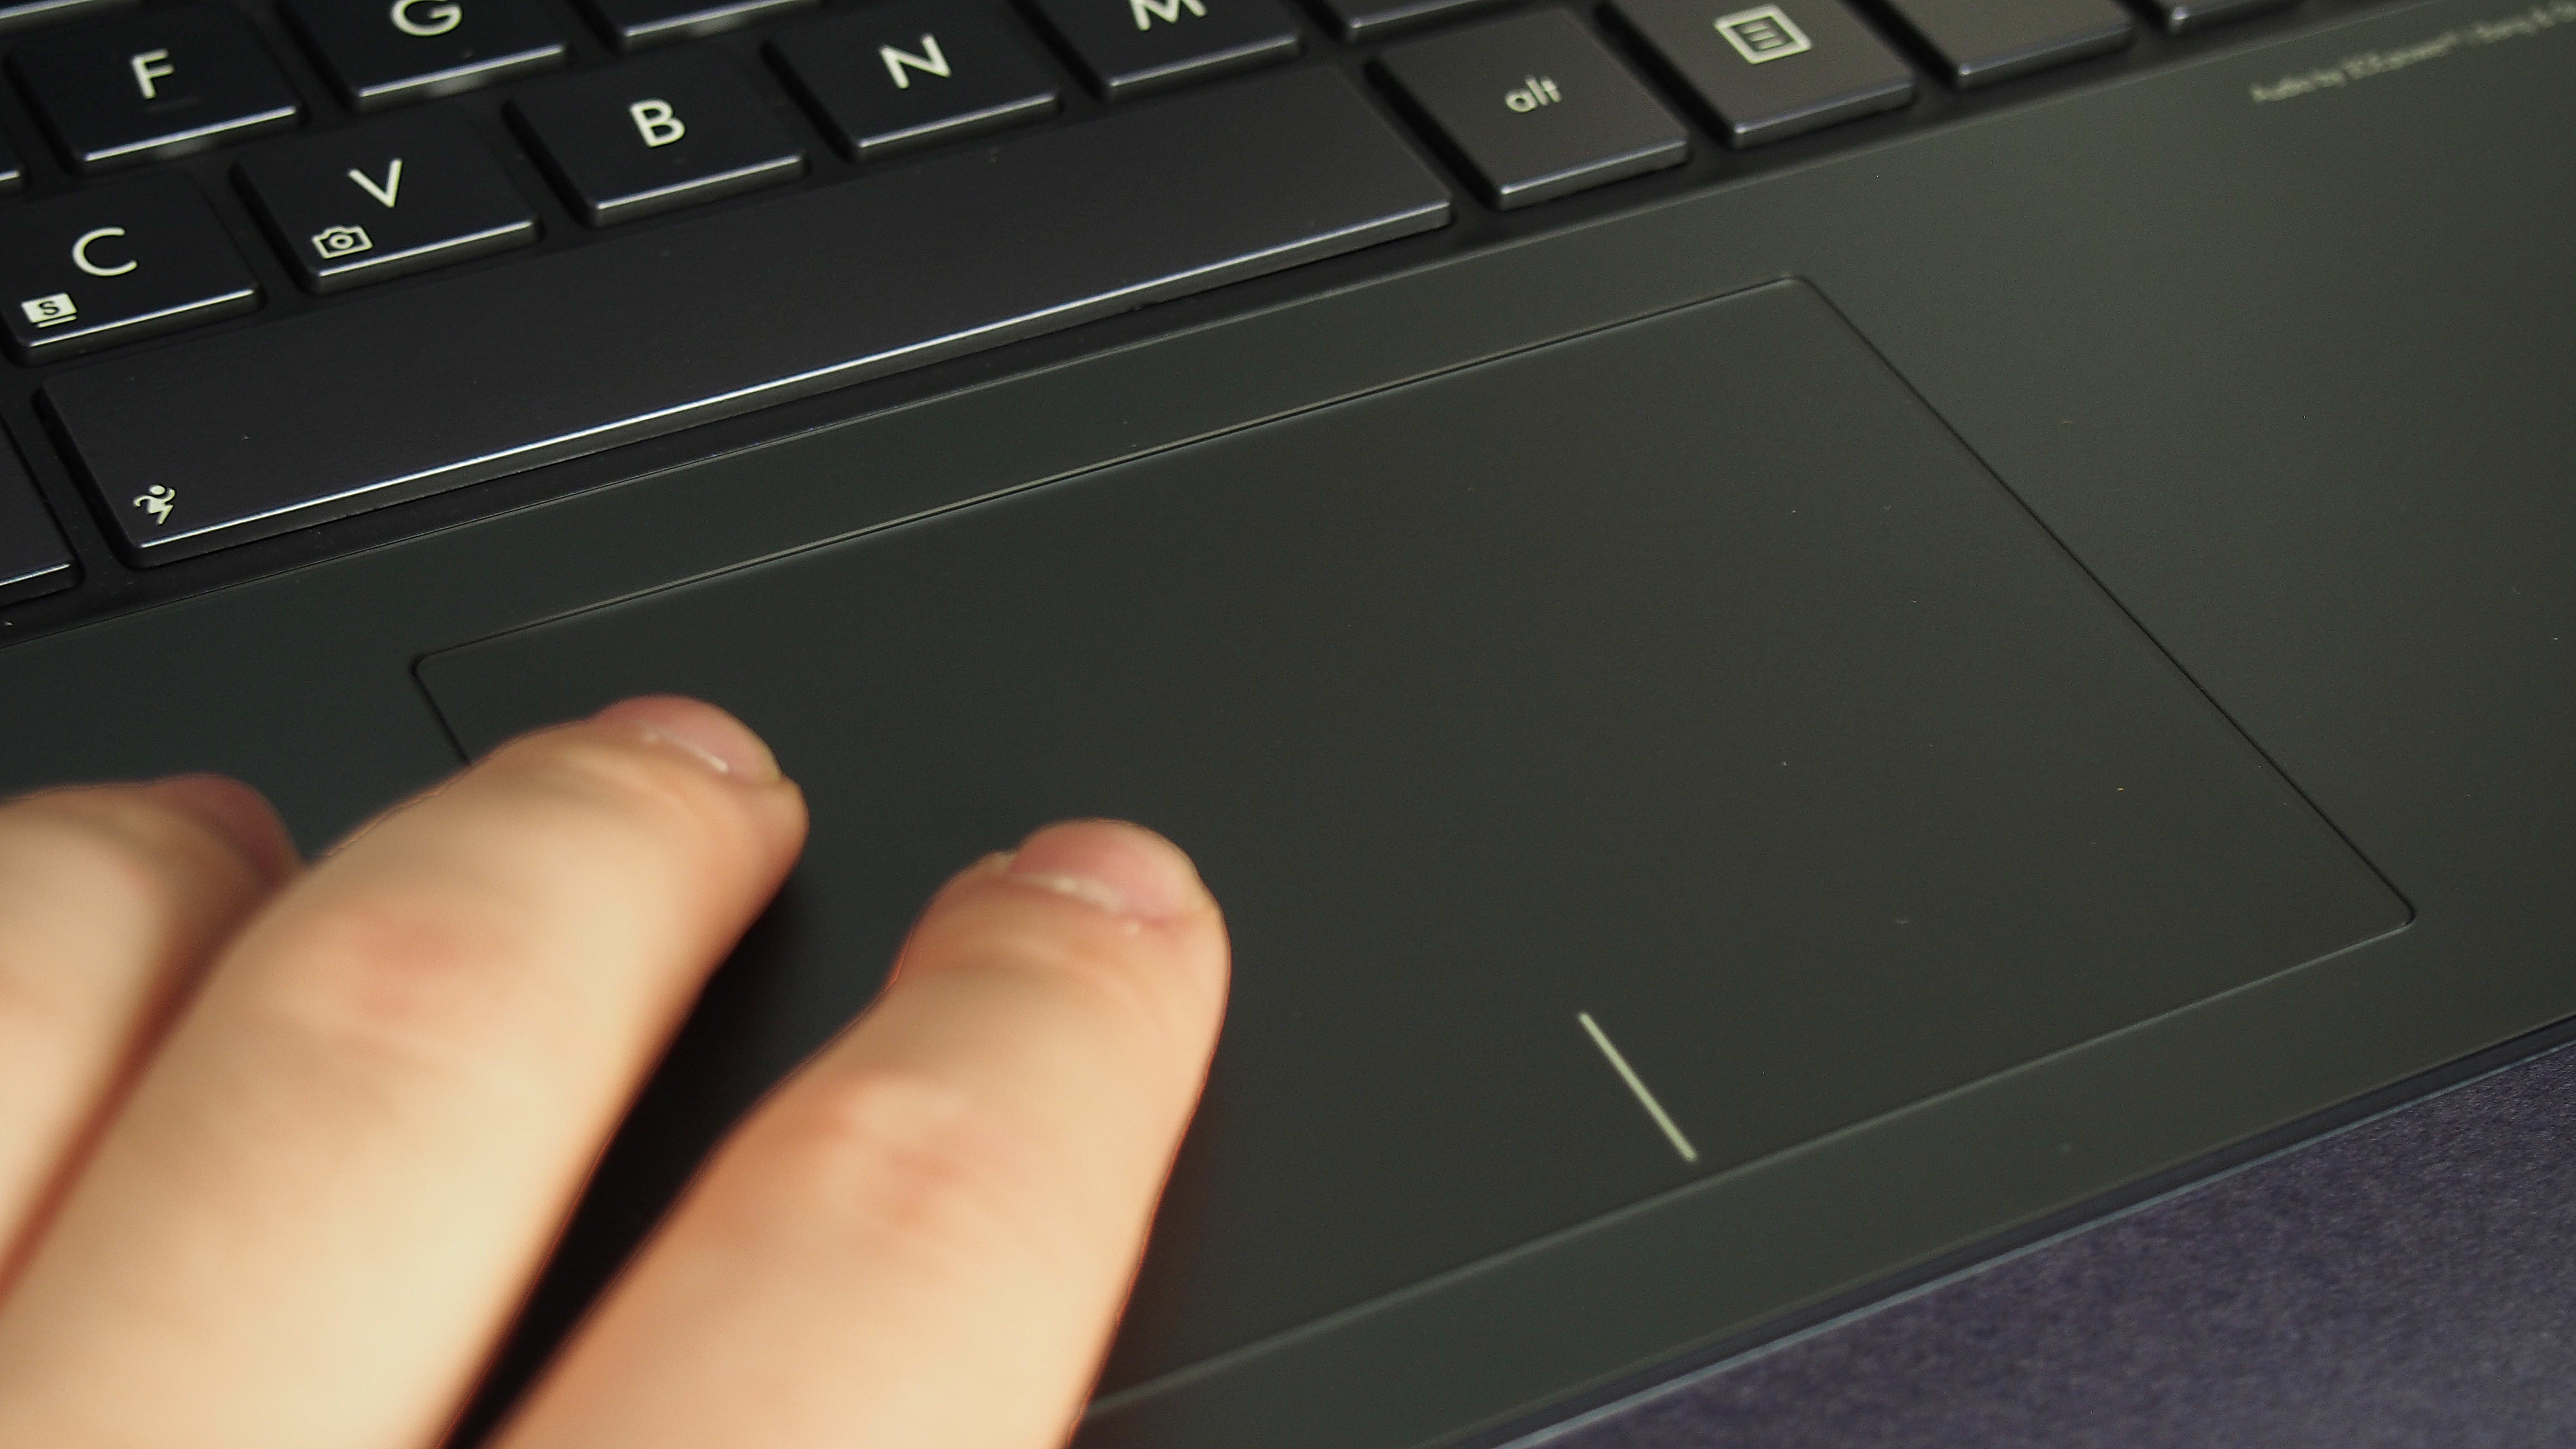 The touchpad on the UX301LA is unrivaled by any other ultrabook.